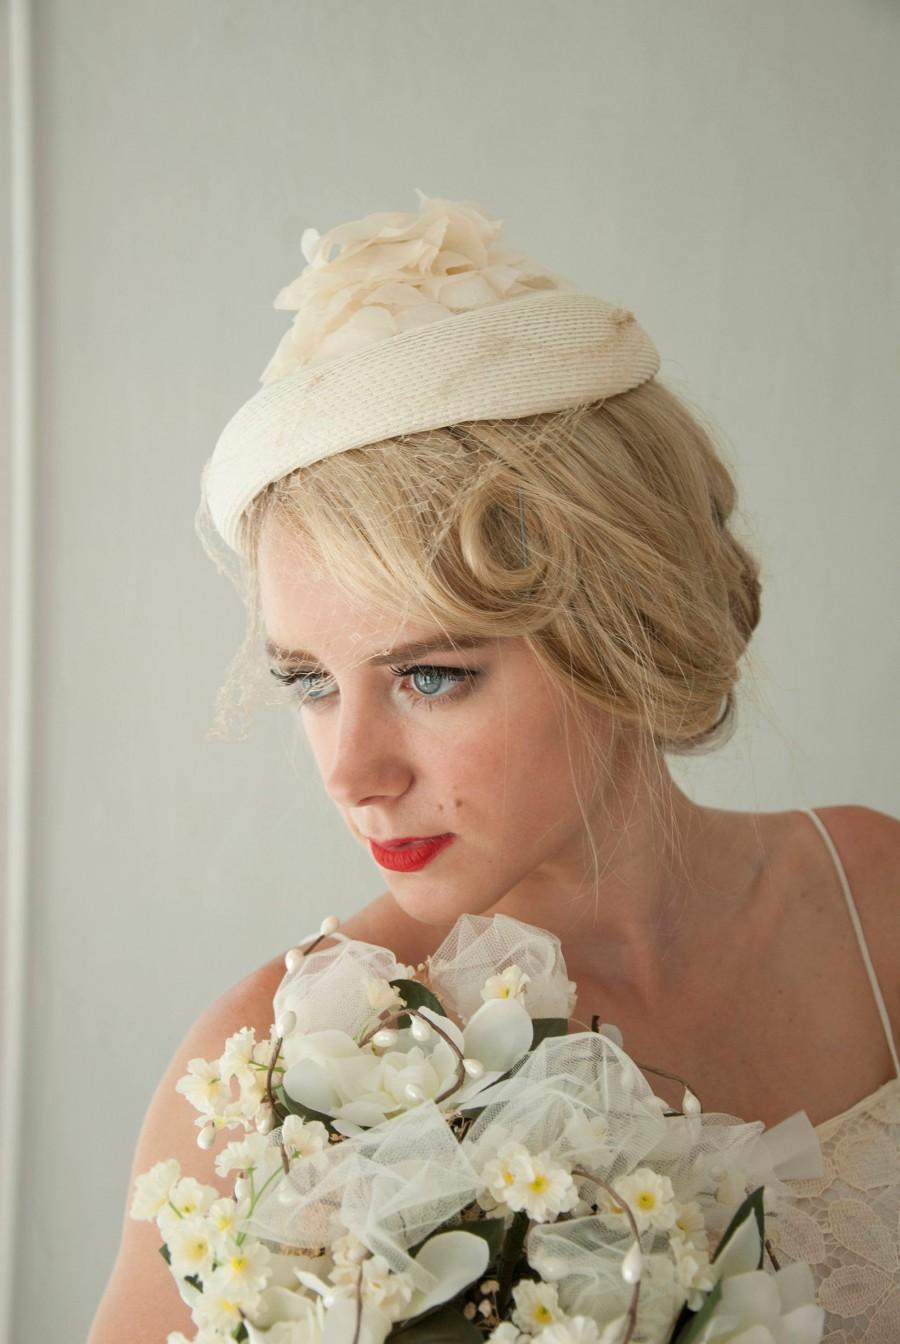 Mariage - Vintage white floral veil hat, organza floral pillbox, netting, ivory 1950s wedding formal pin-up mid-century